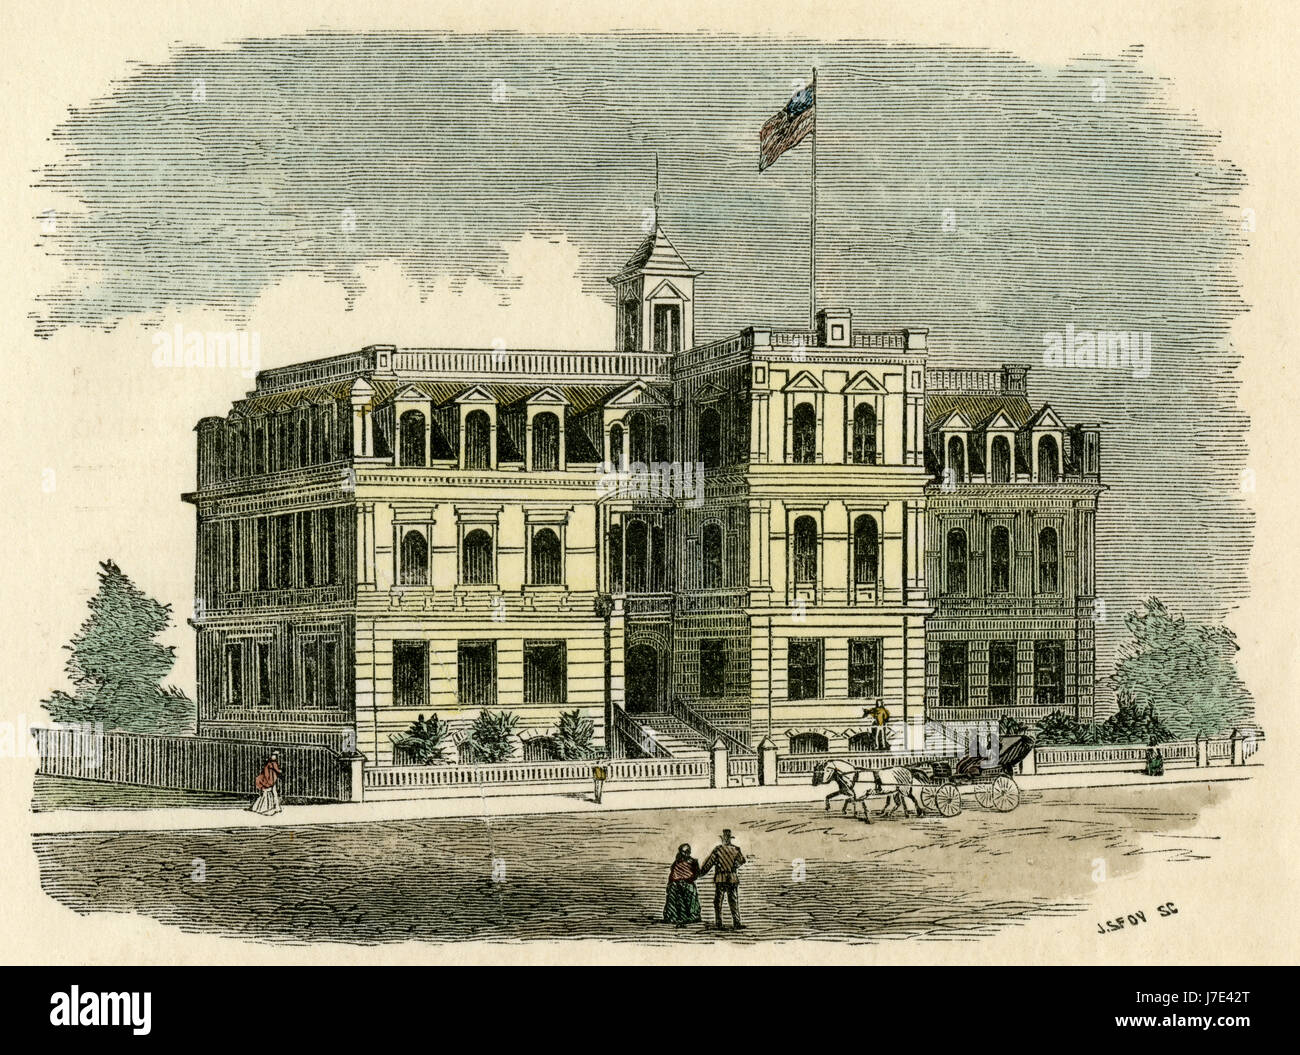 Antique c1880 engraving, Lincoln School House, Fifth St., San Francisco, 1873 (Accommodation 1150 Boys; Cost $100,000). - Stock Image